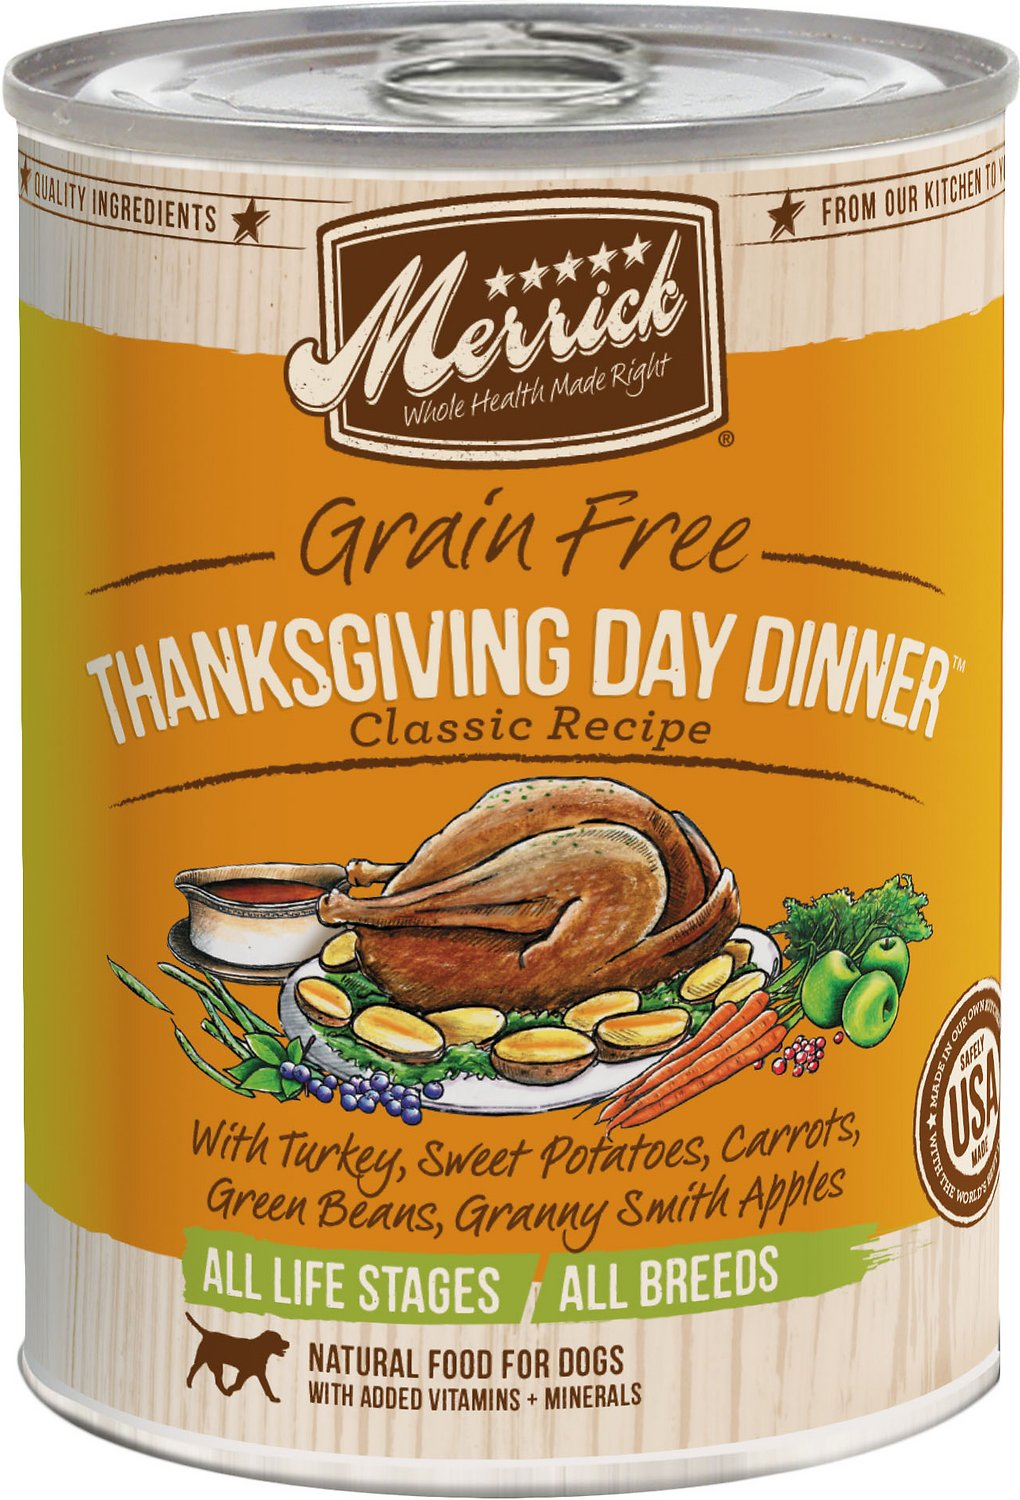 Merrick classic grain free thanksgiving day dinner recipe canned video forumfinder Choice Image